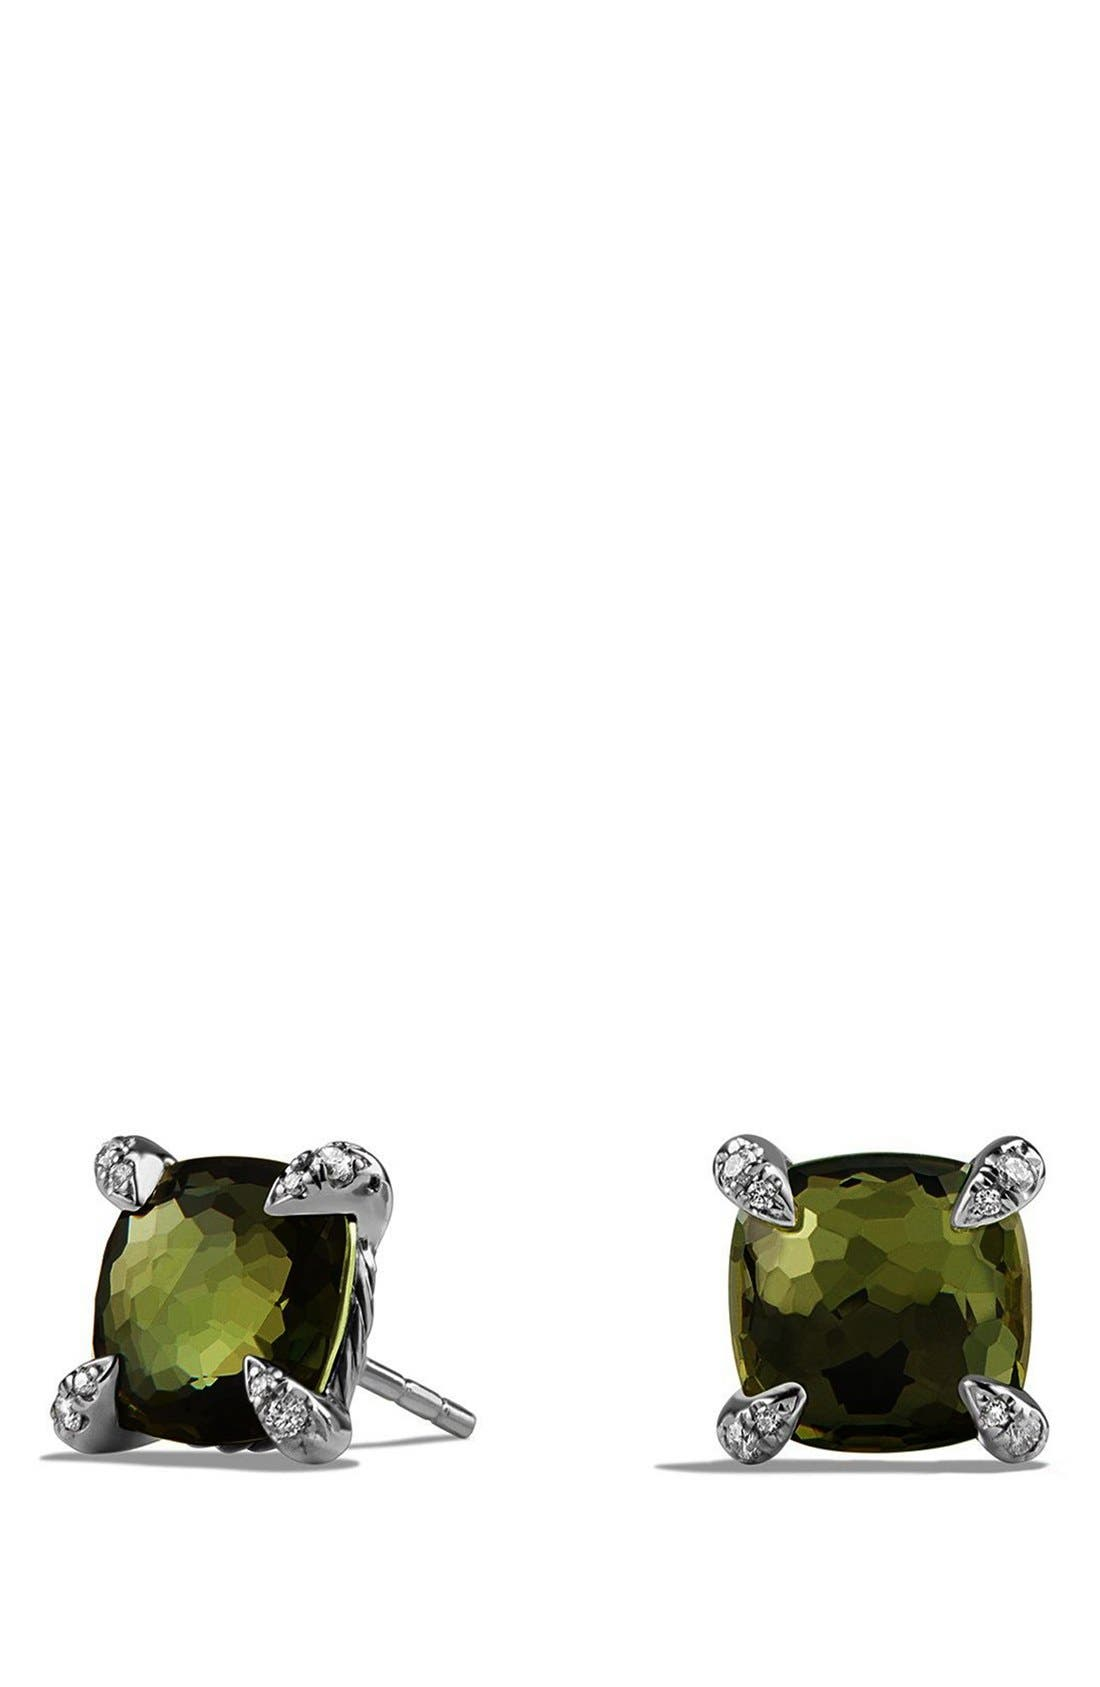 'Châtelaine' Earrings with Semiprecious Stones and Diamonds,                         Main,                         color, SILVER/ CITRINE/ HEMATINE